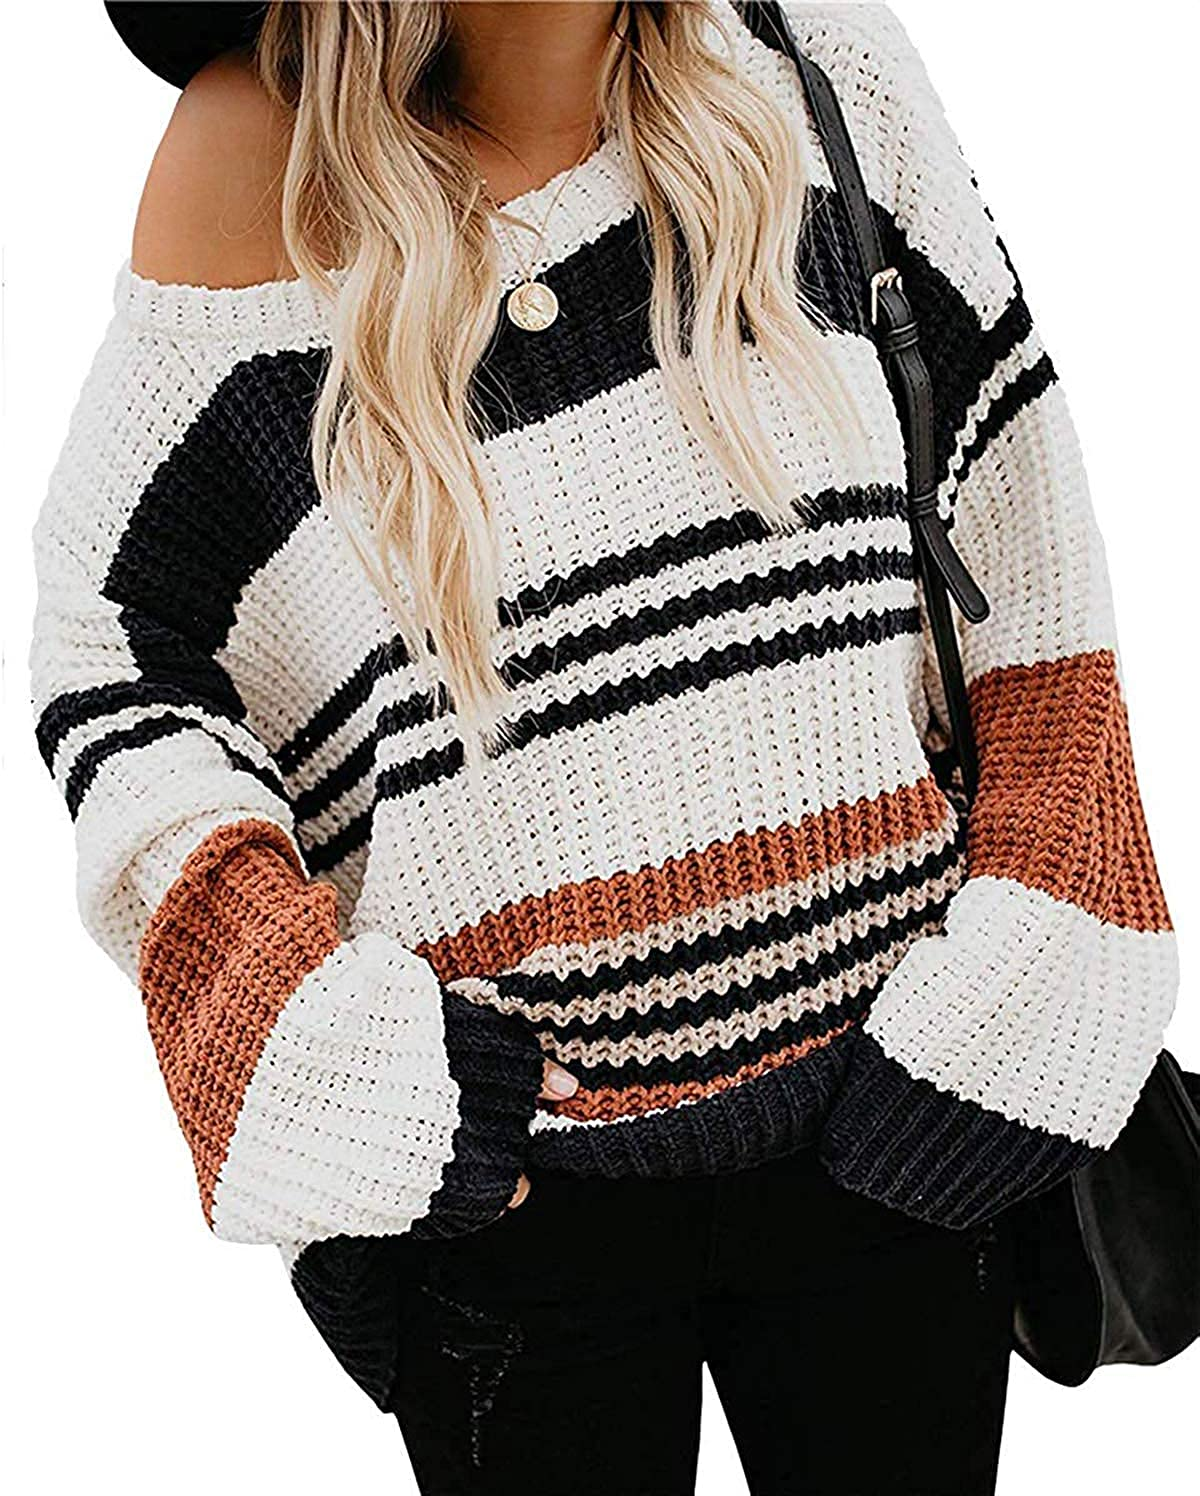 MEROKEETY Women's Crew Neck Long Sleeve Color Block Knit Sweater Casual Pullover Jumper Tops